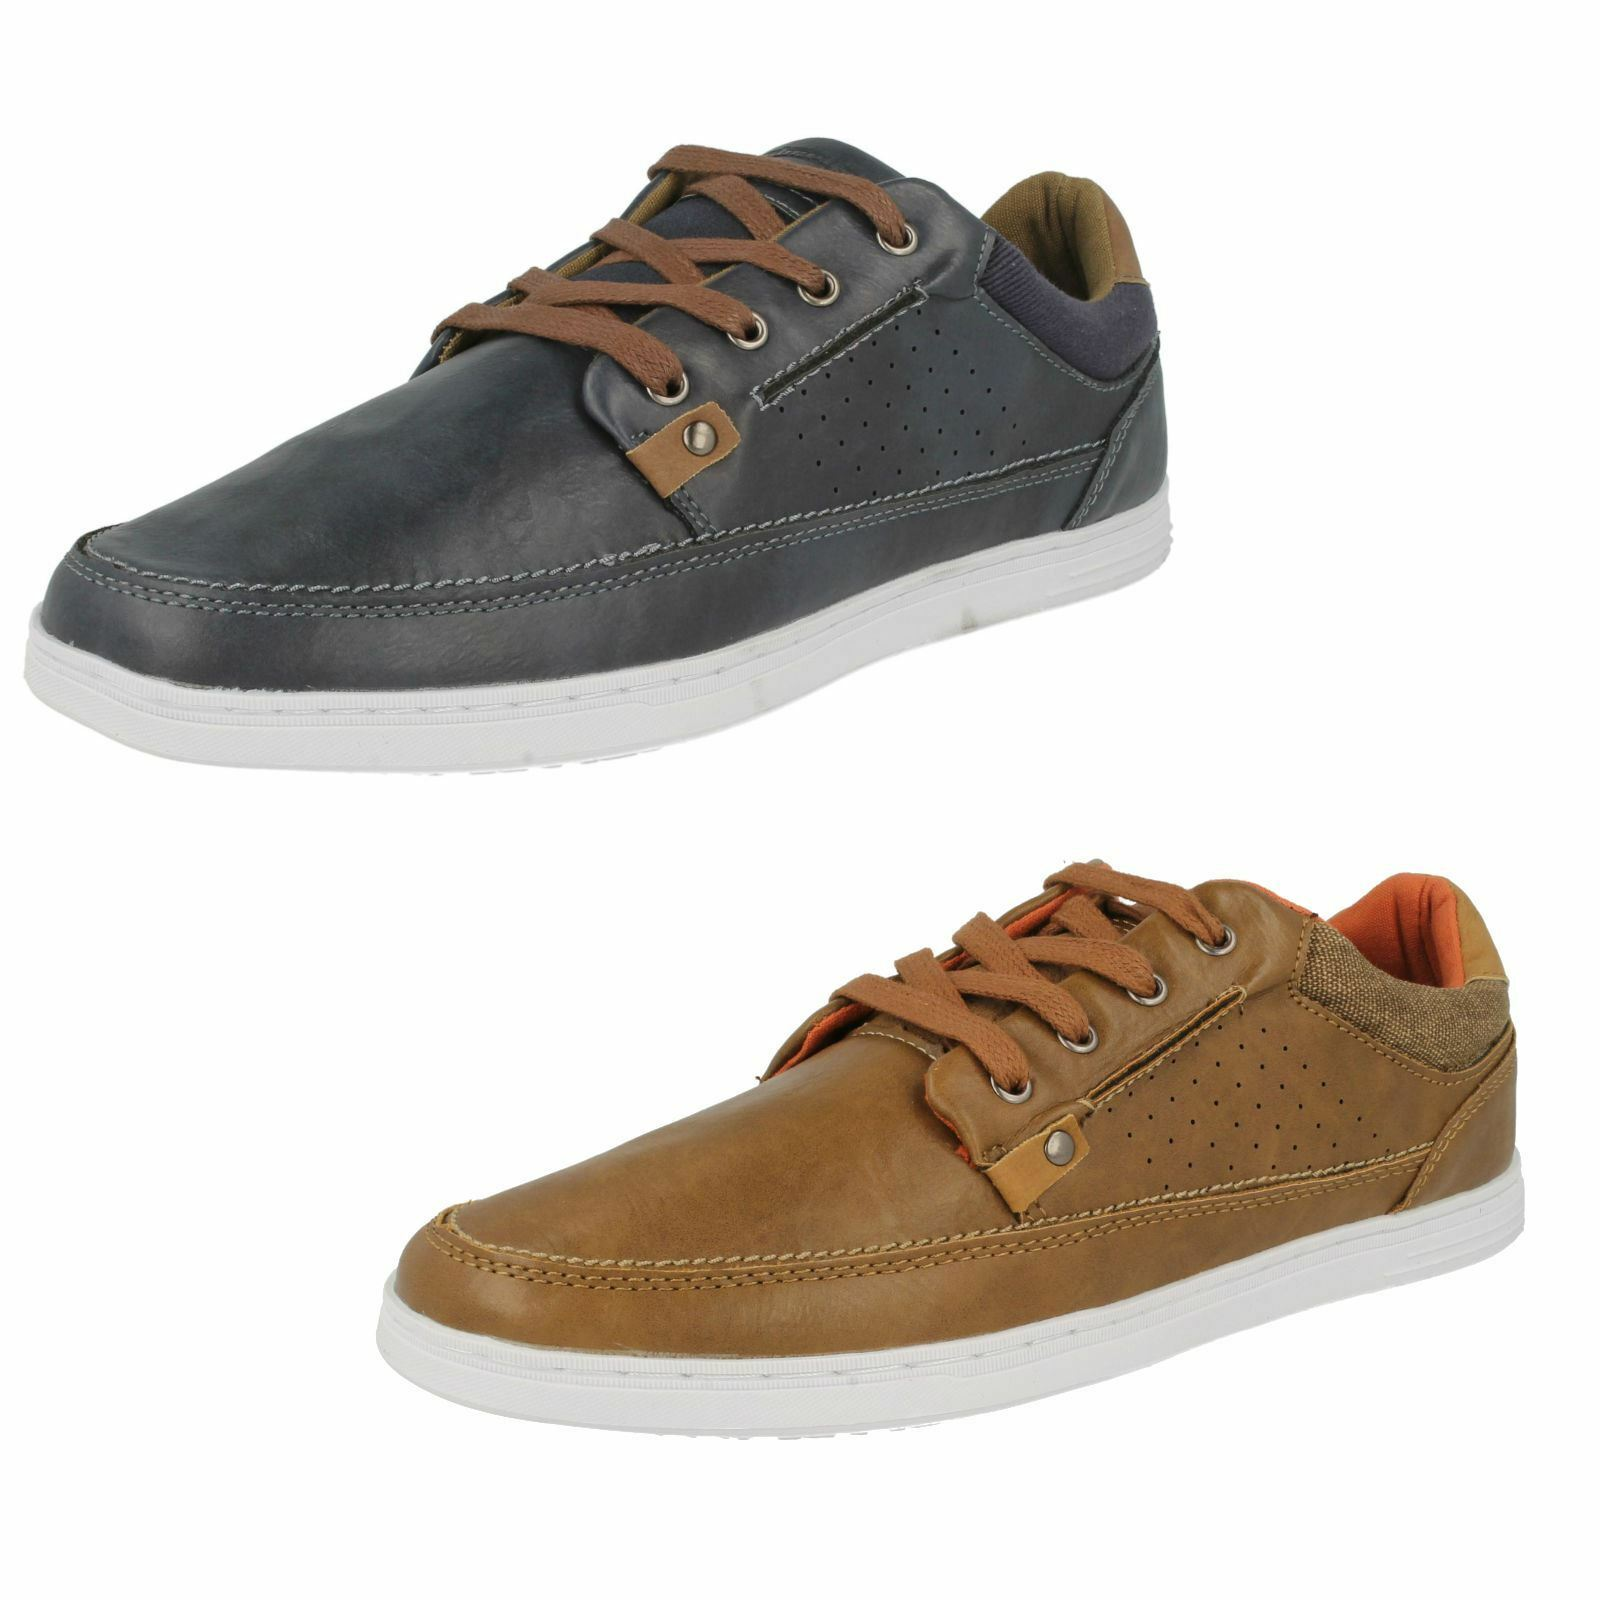 Mens Lambretta Casual Lace Up shoes - Spoons